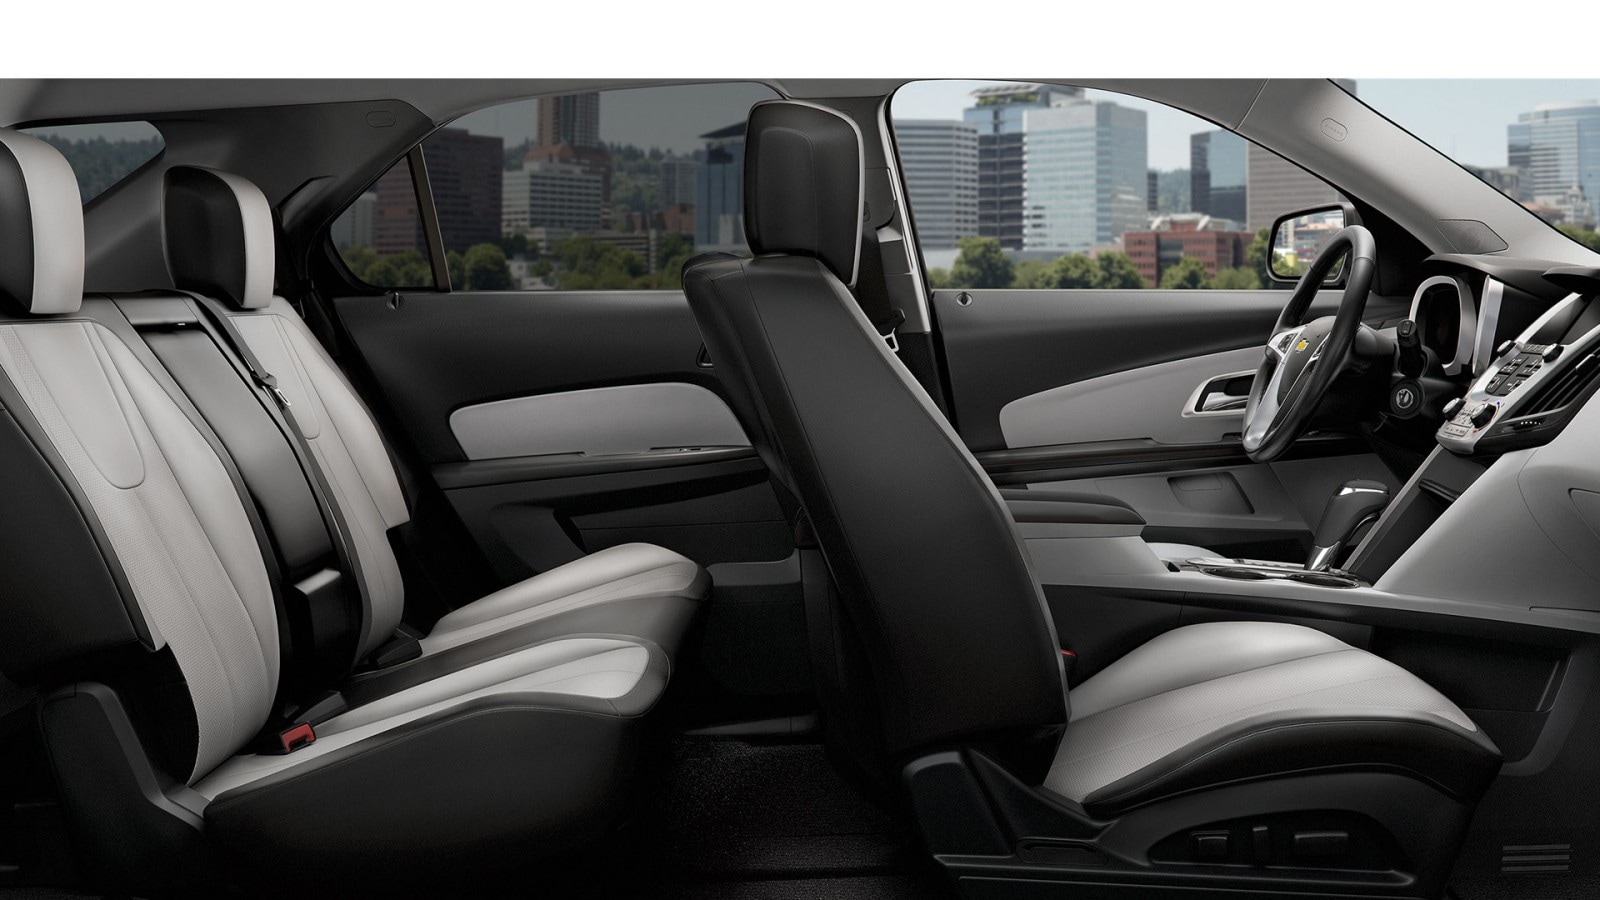 Interior of the 2017 Chevy Equinox